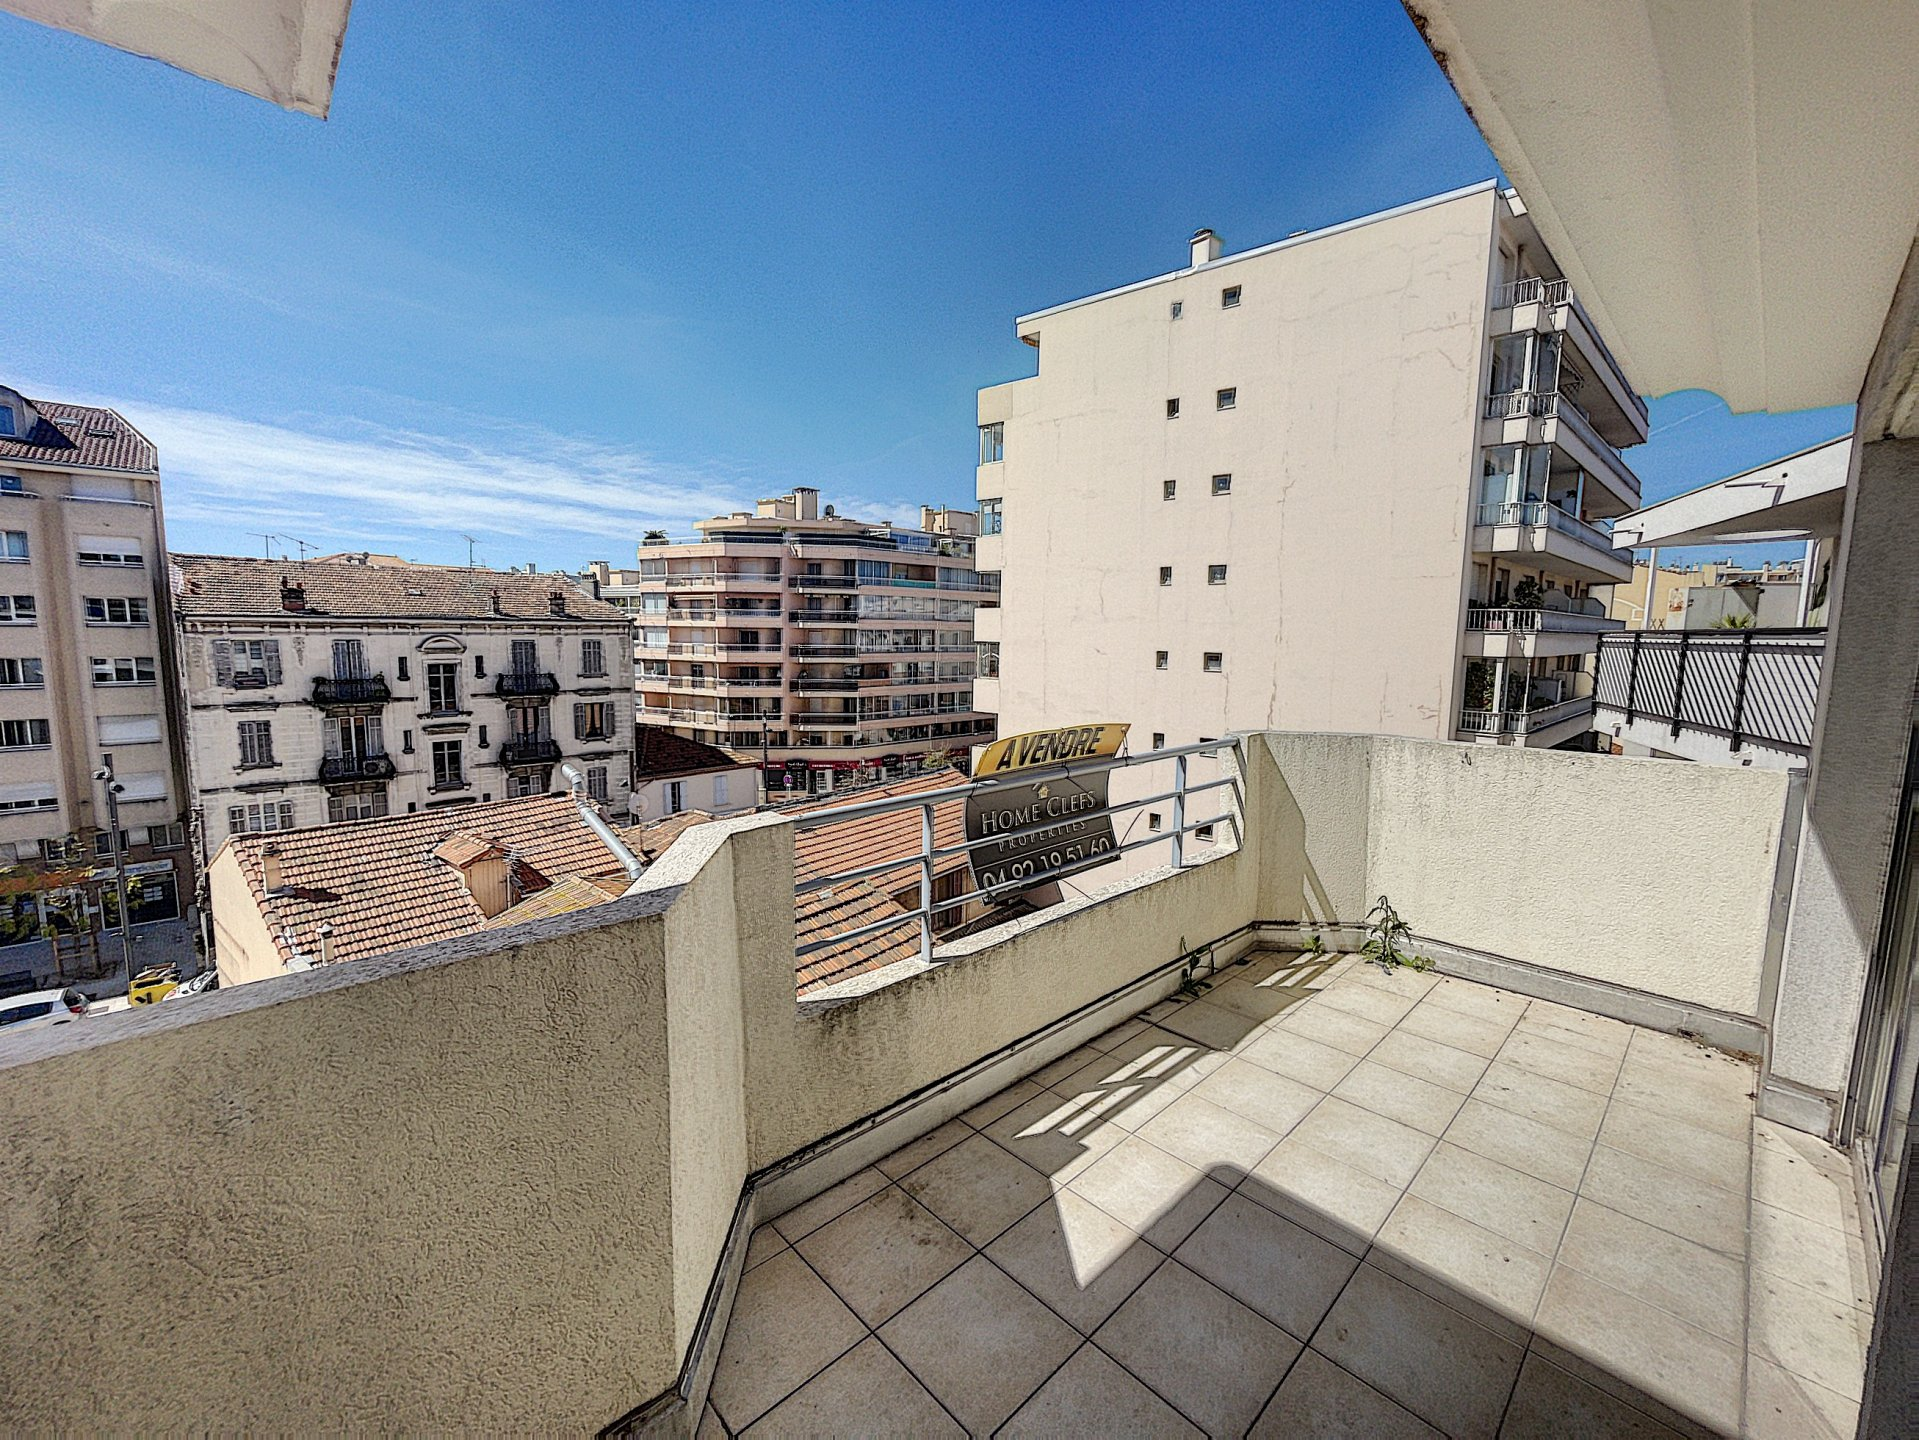 Cannes-La-Bocca-4 rooms with terrace.